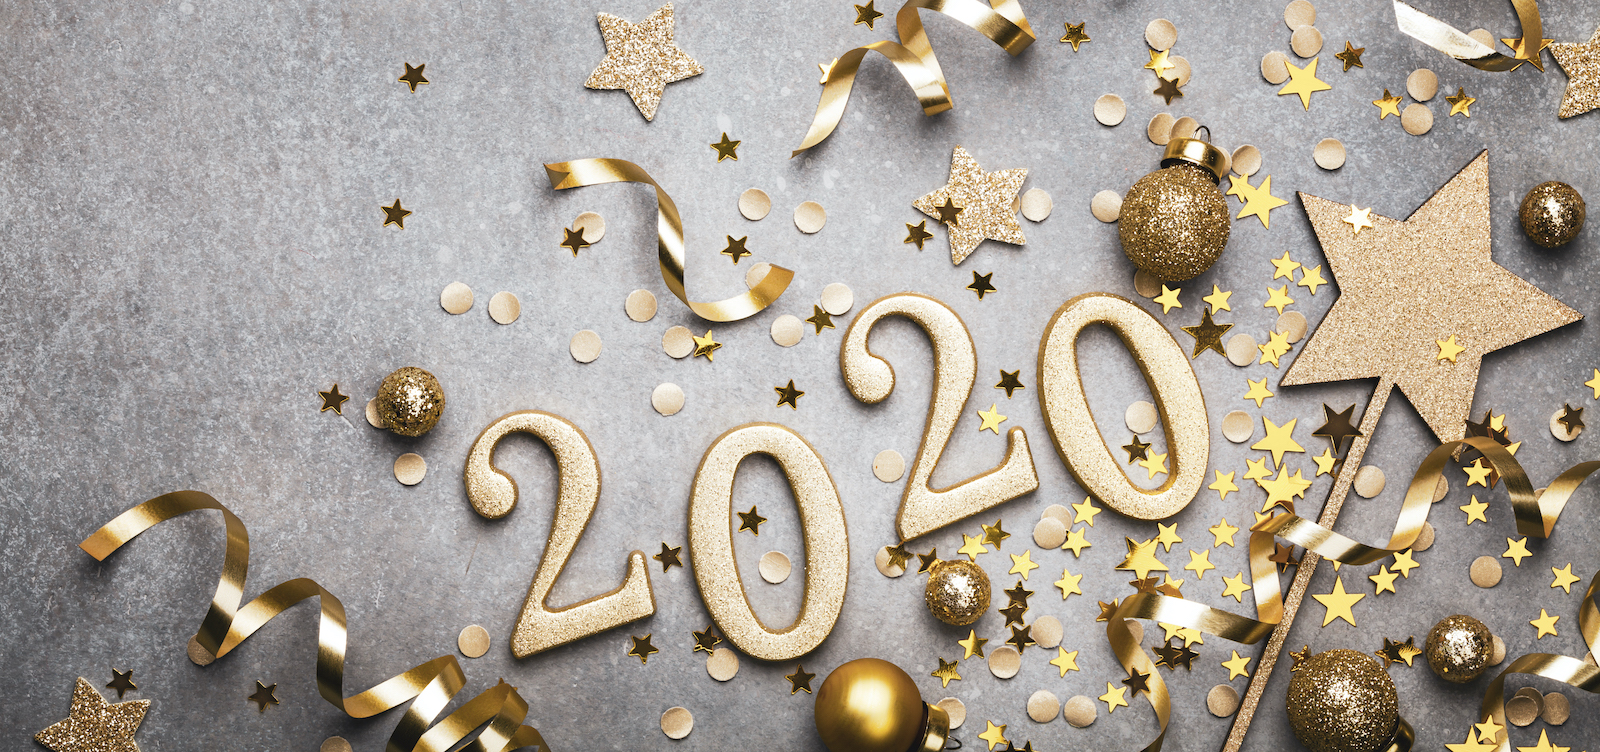 2020-resolutions